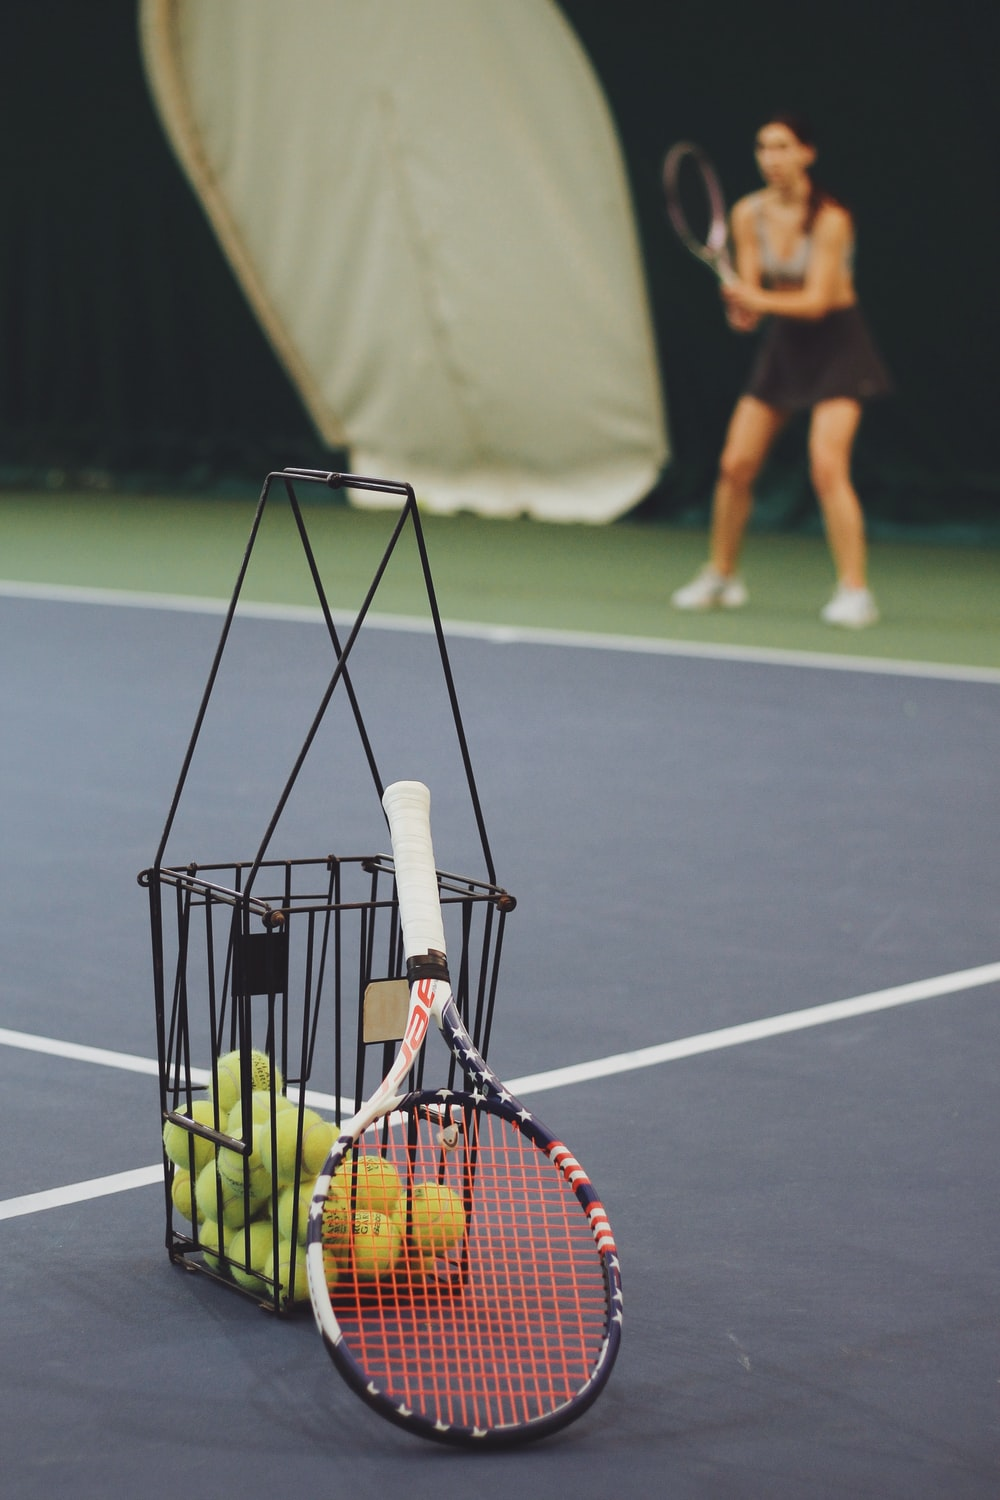 woman standing and holding tennis racket at the tennis court